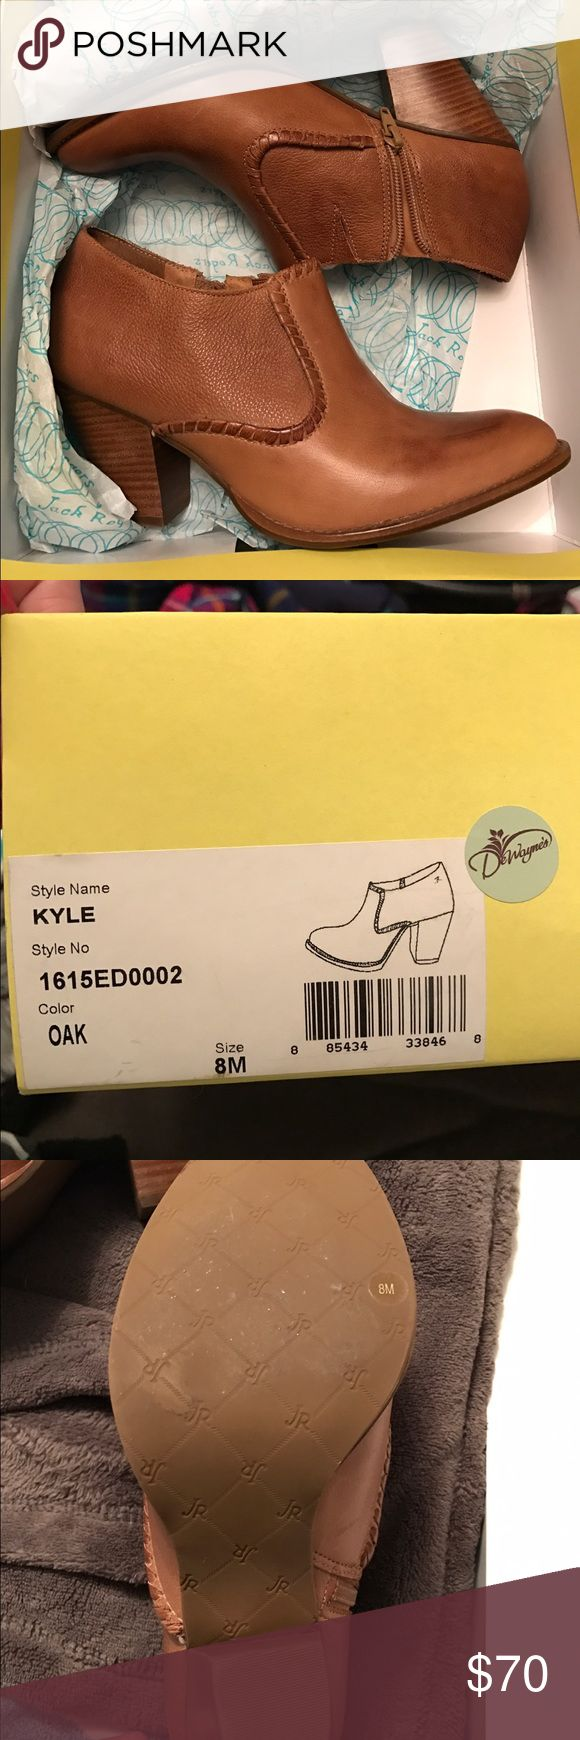 Jack Rogers Kyle Bootie Size 8, brand new in box Jack Rogers Kyle Bootie, only worn in the store to try them on. Selling because I haven't worn them and I want someone else to get use out of them. Jack Rogers Shoes Ankle Boots & Booties